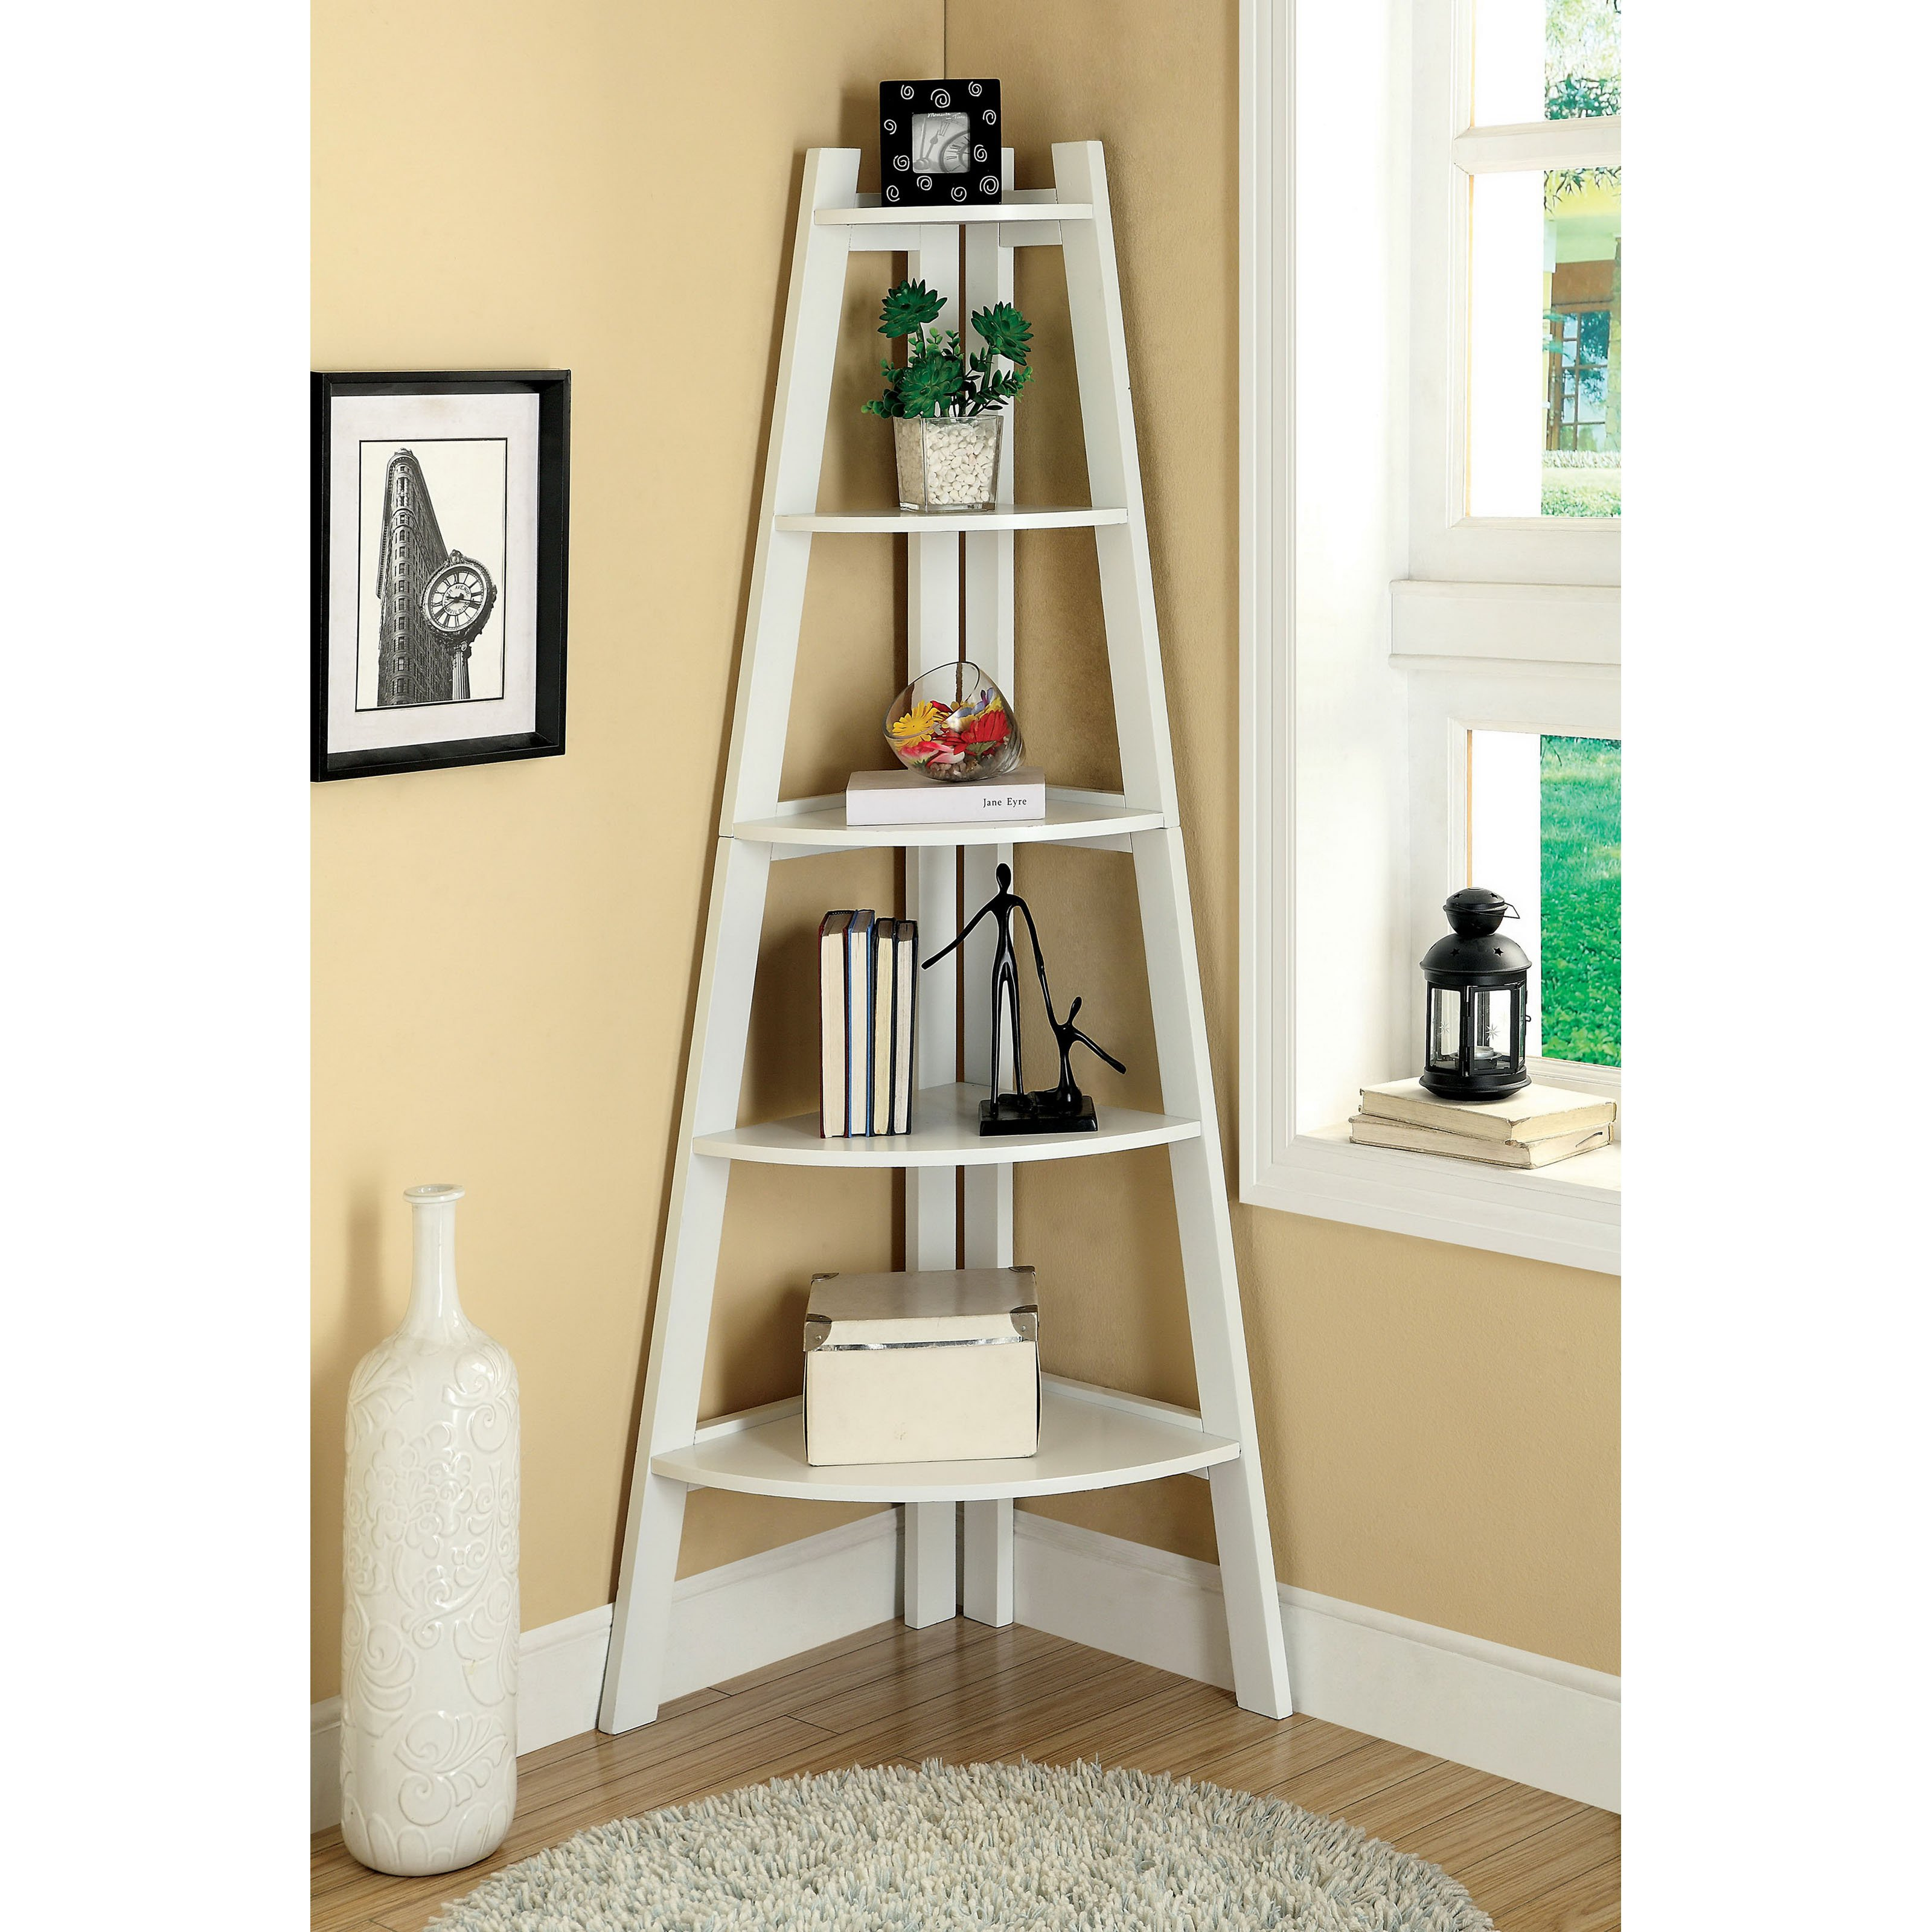 charming white corner ladder bookshelf on wooden floor matched with cream wall plus round carpet for living room decor ideas